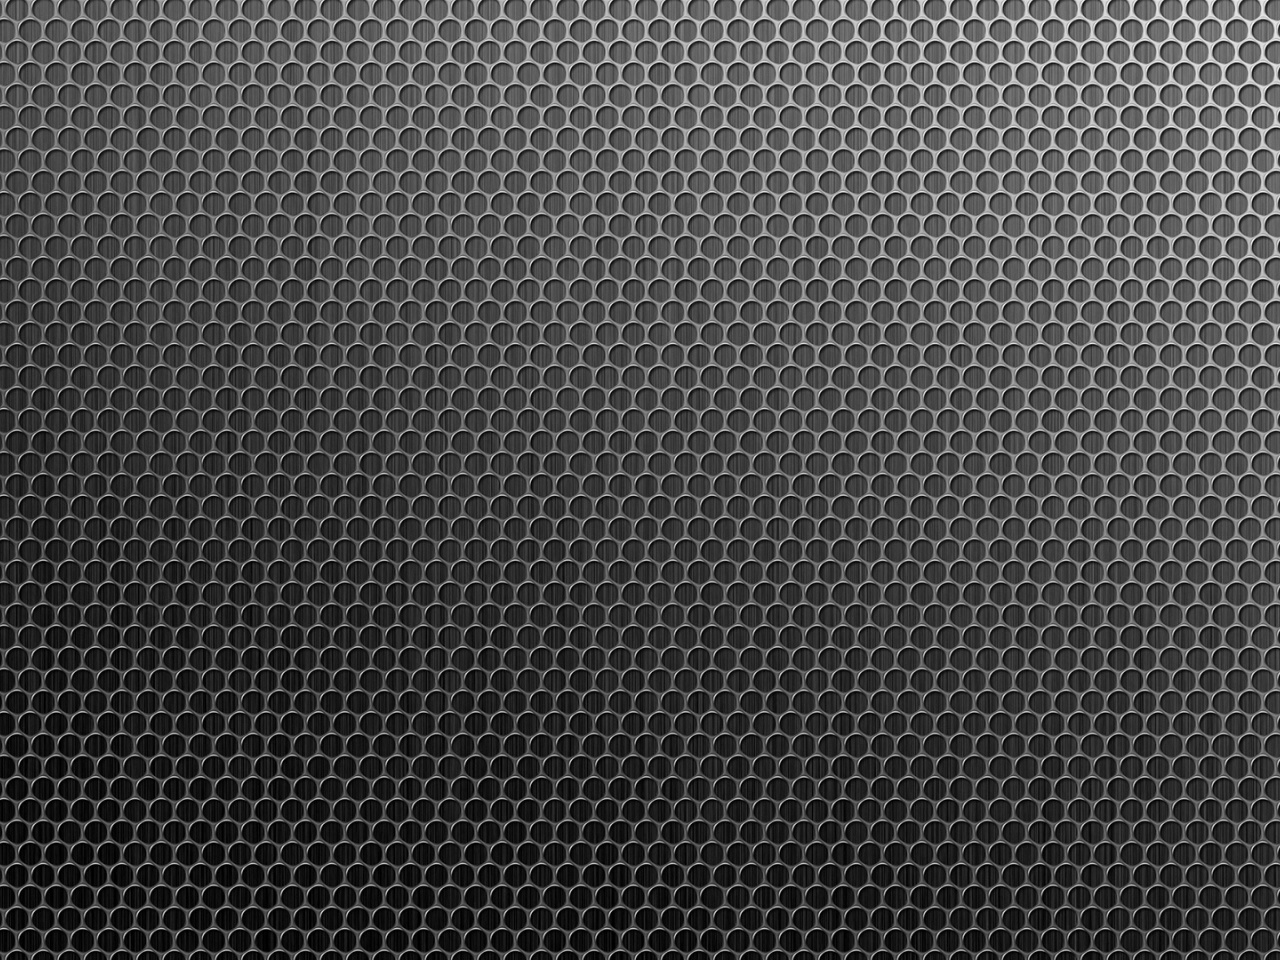 1280x960 grey honeycomb pattern desktop pc and mac wallpaper for Grey patterned wallpaper